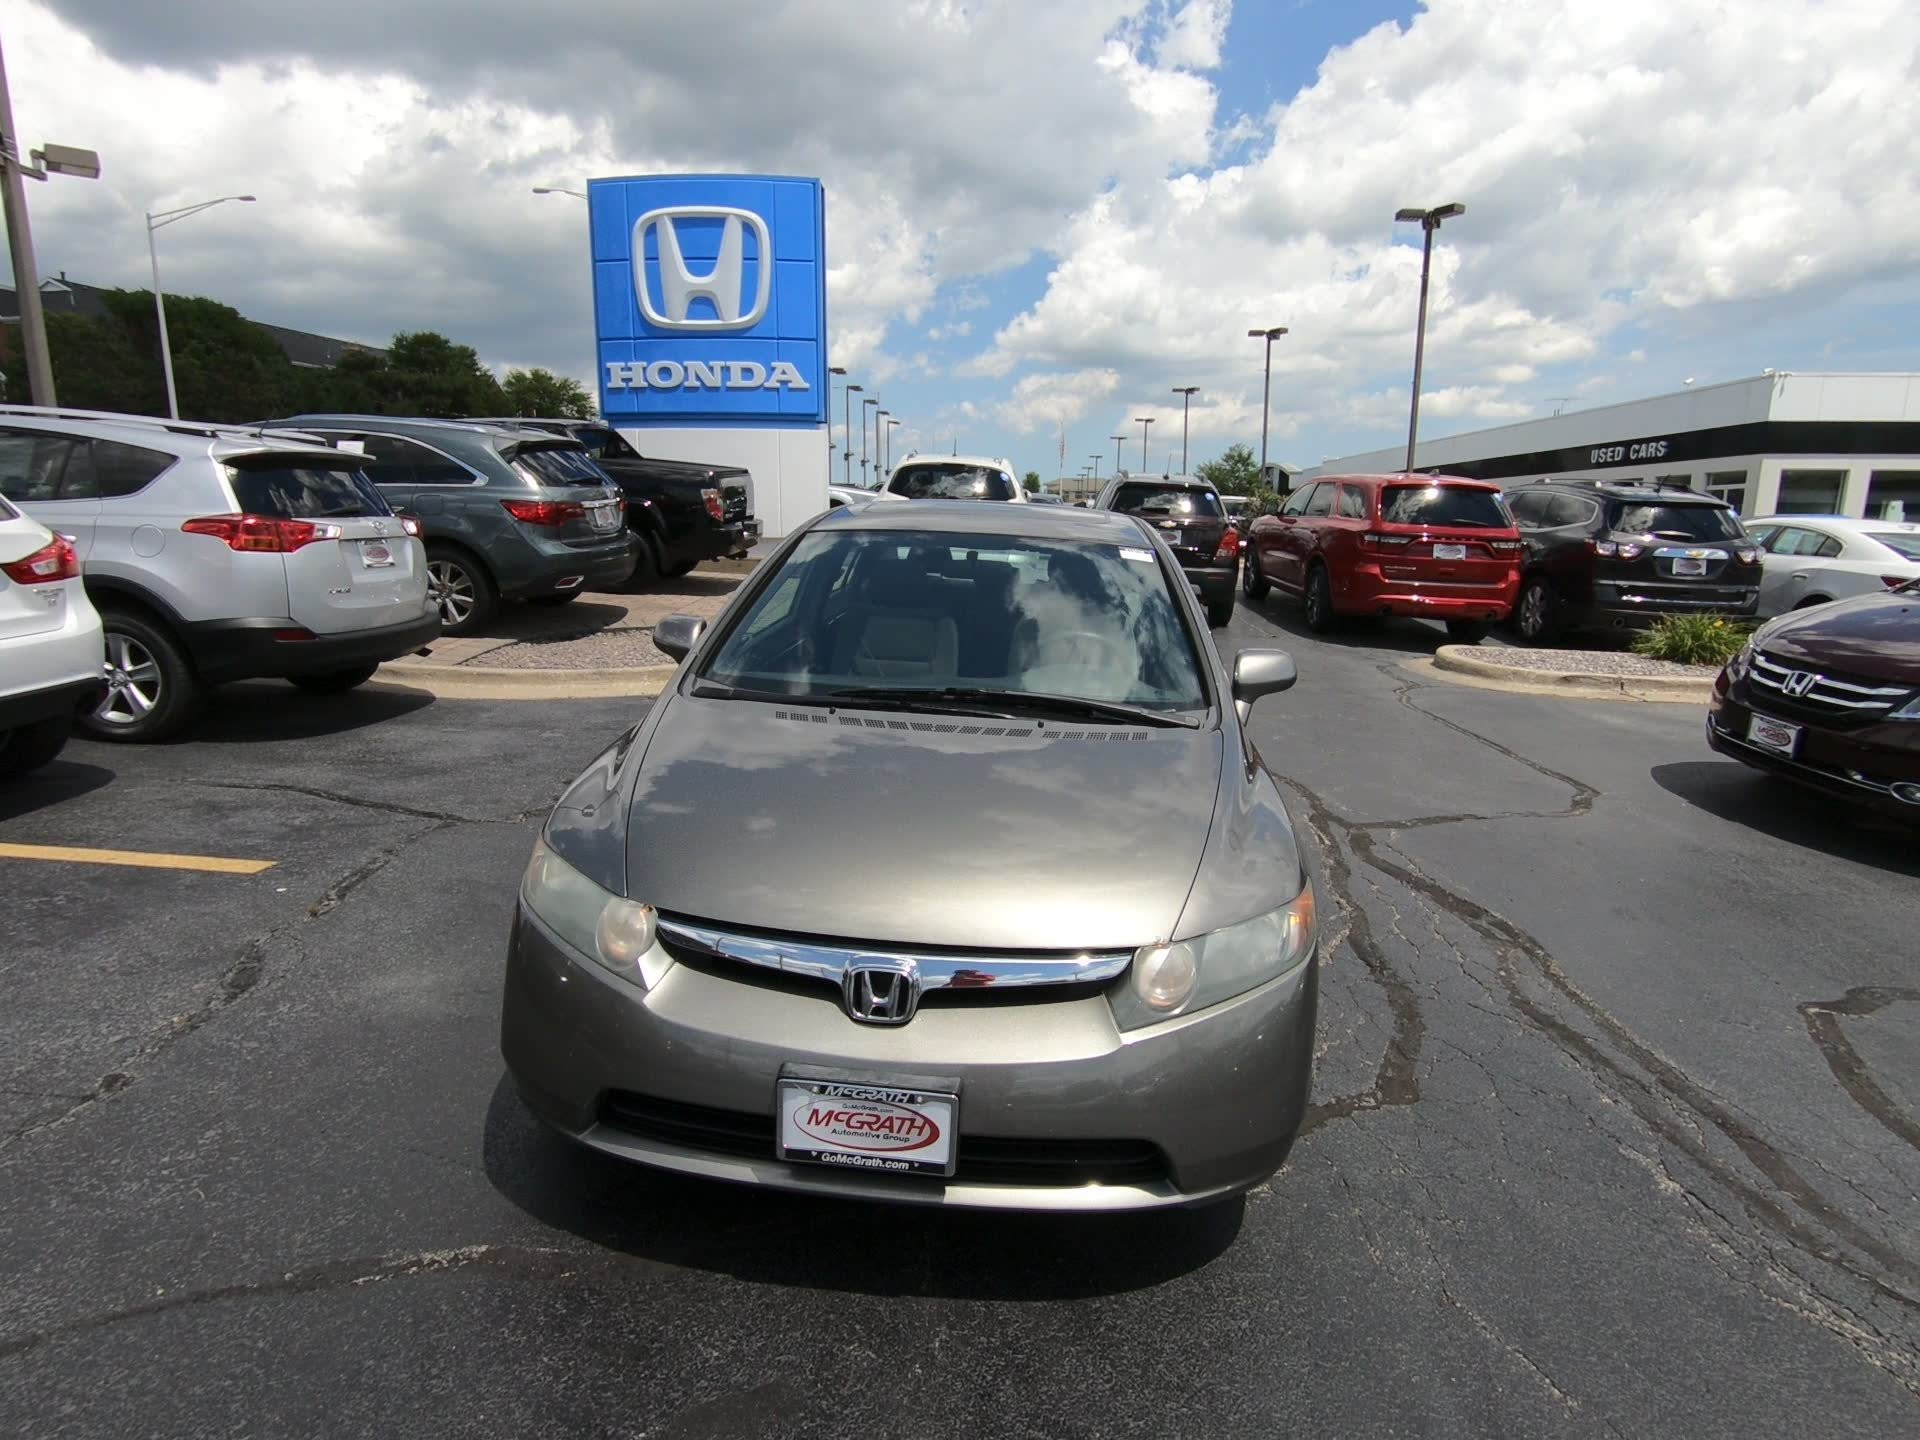 Used Cars for Sale In Chicago Unique Used Car Dealerships Aurora Il Inspirational Used Cars Under $5 000